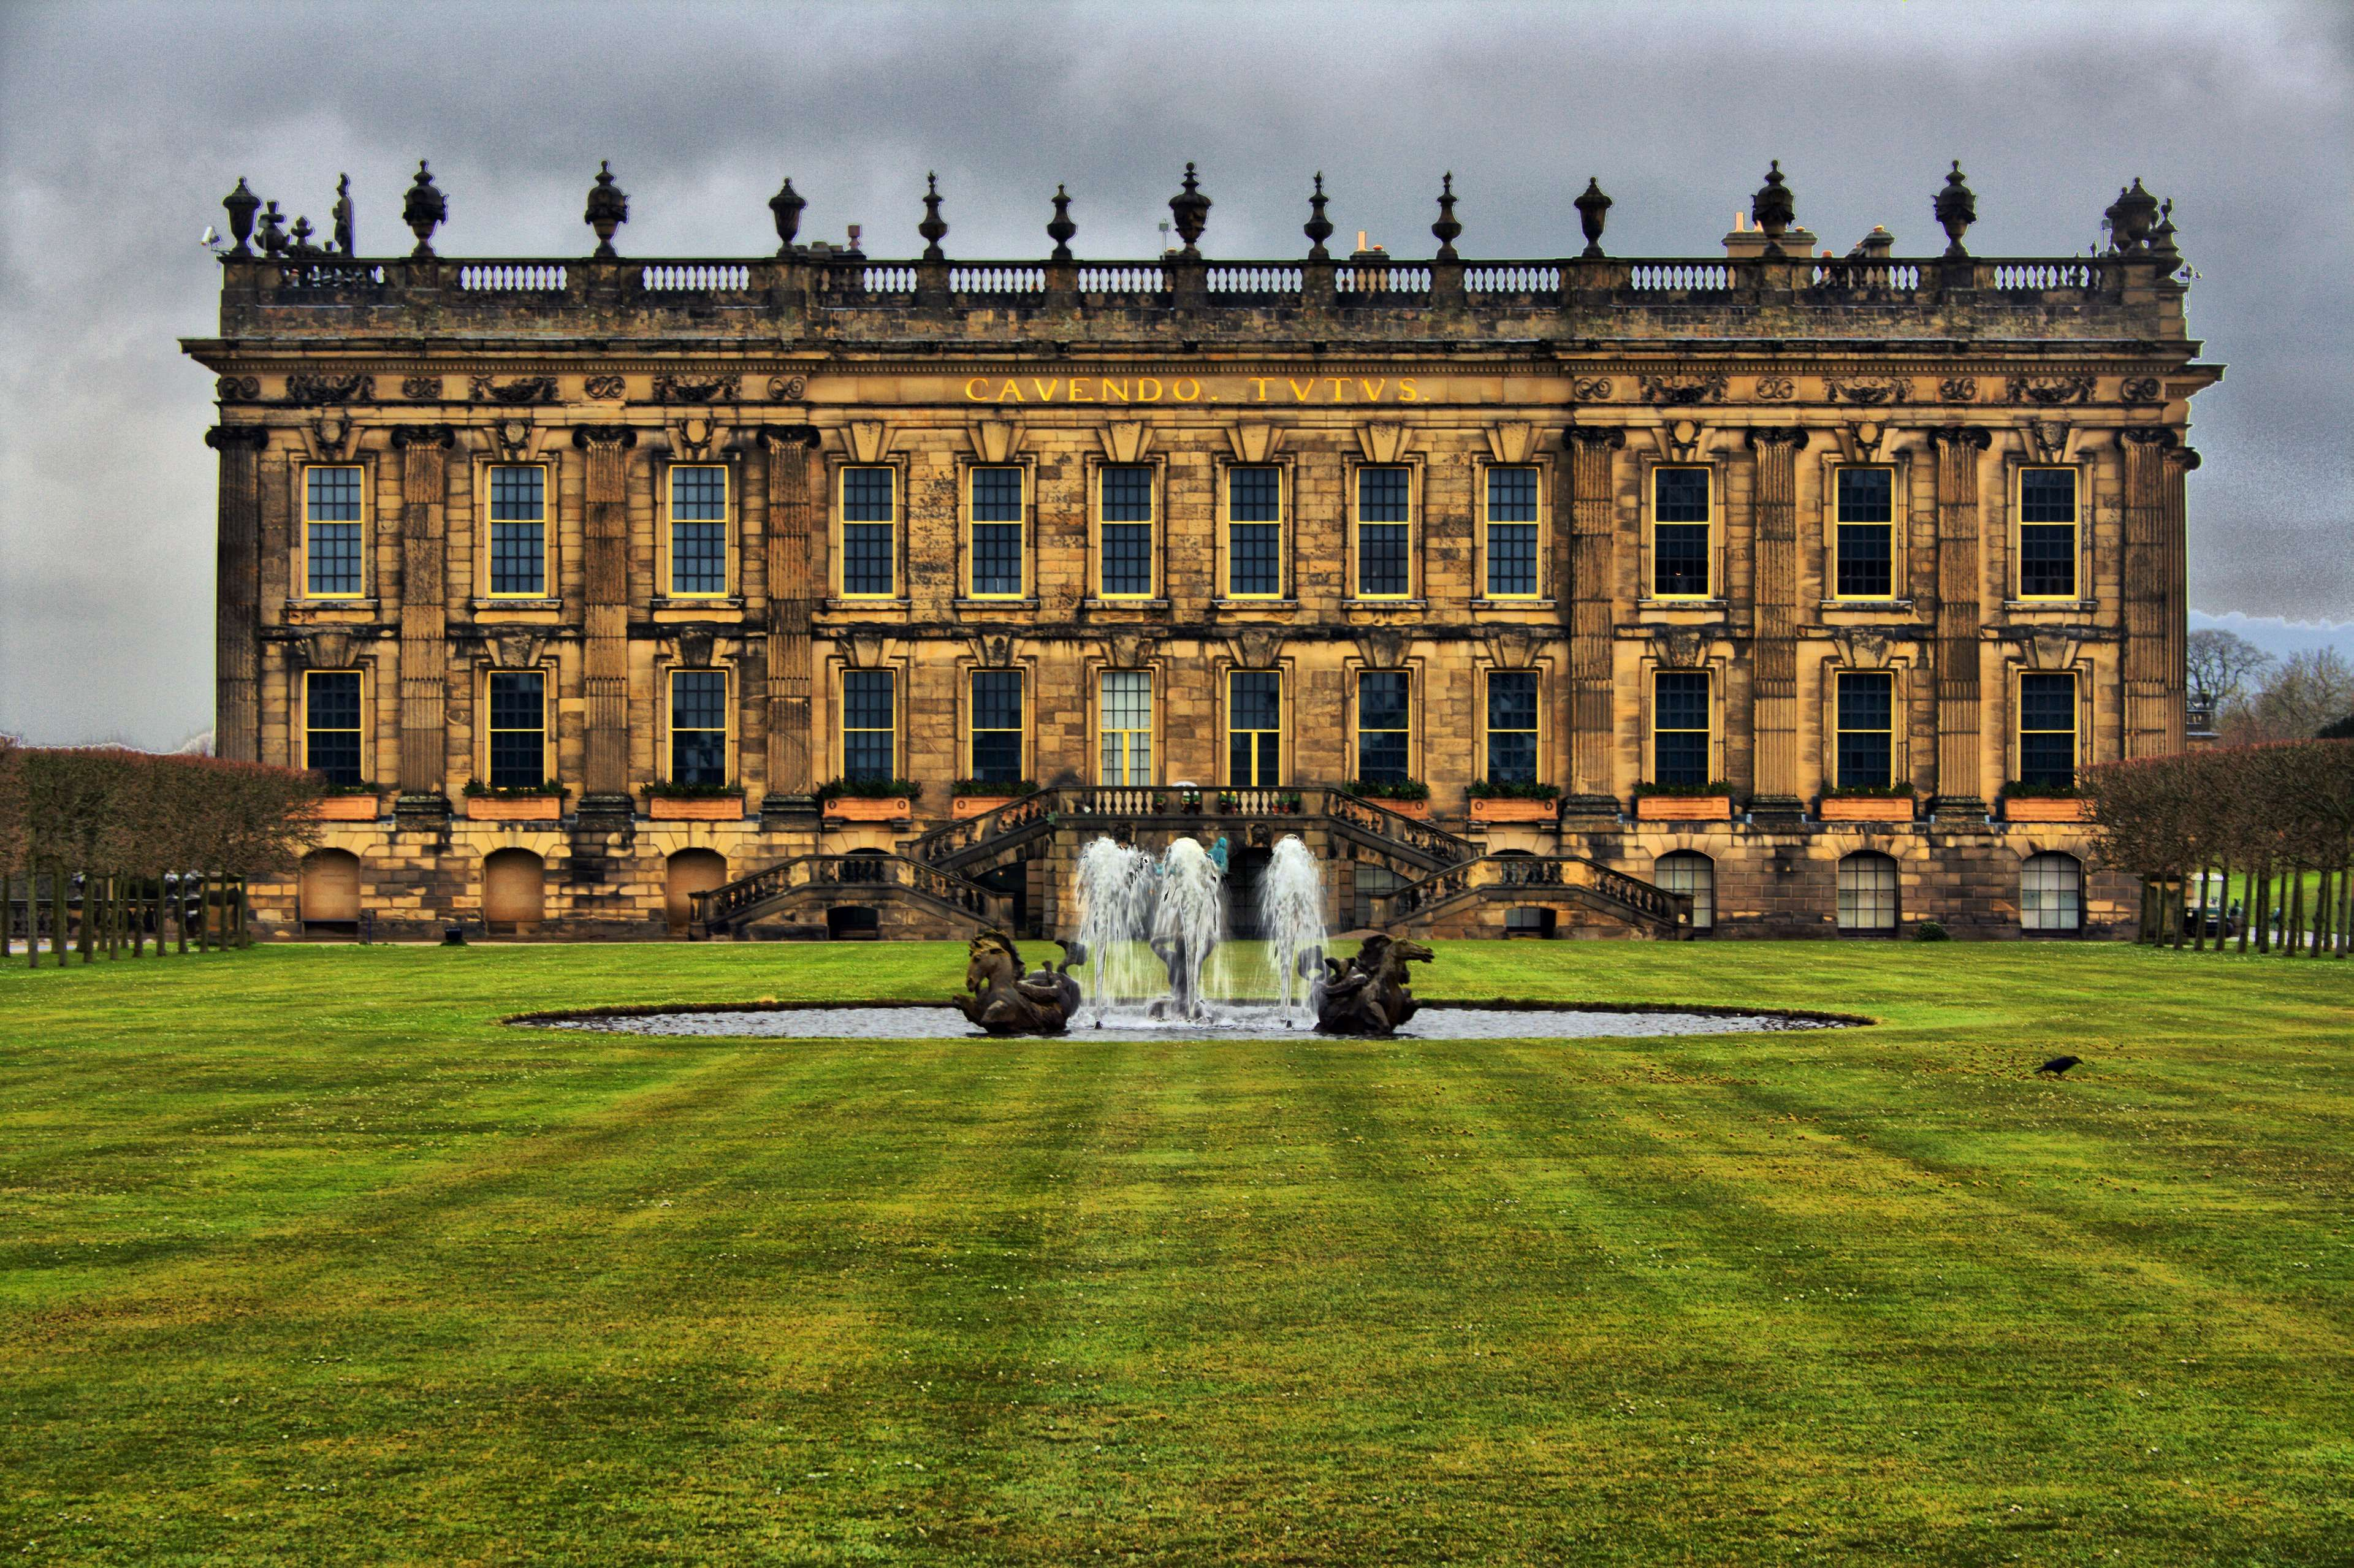 chatsworth house #fountain #grass lawn | wallpapers and backgronds ...